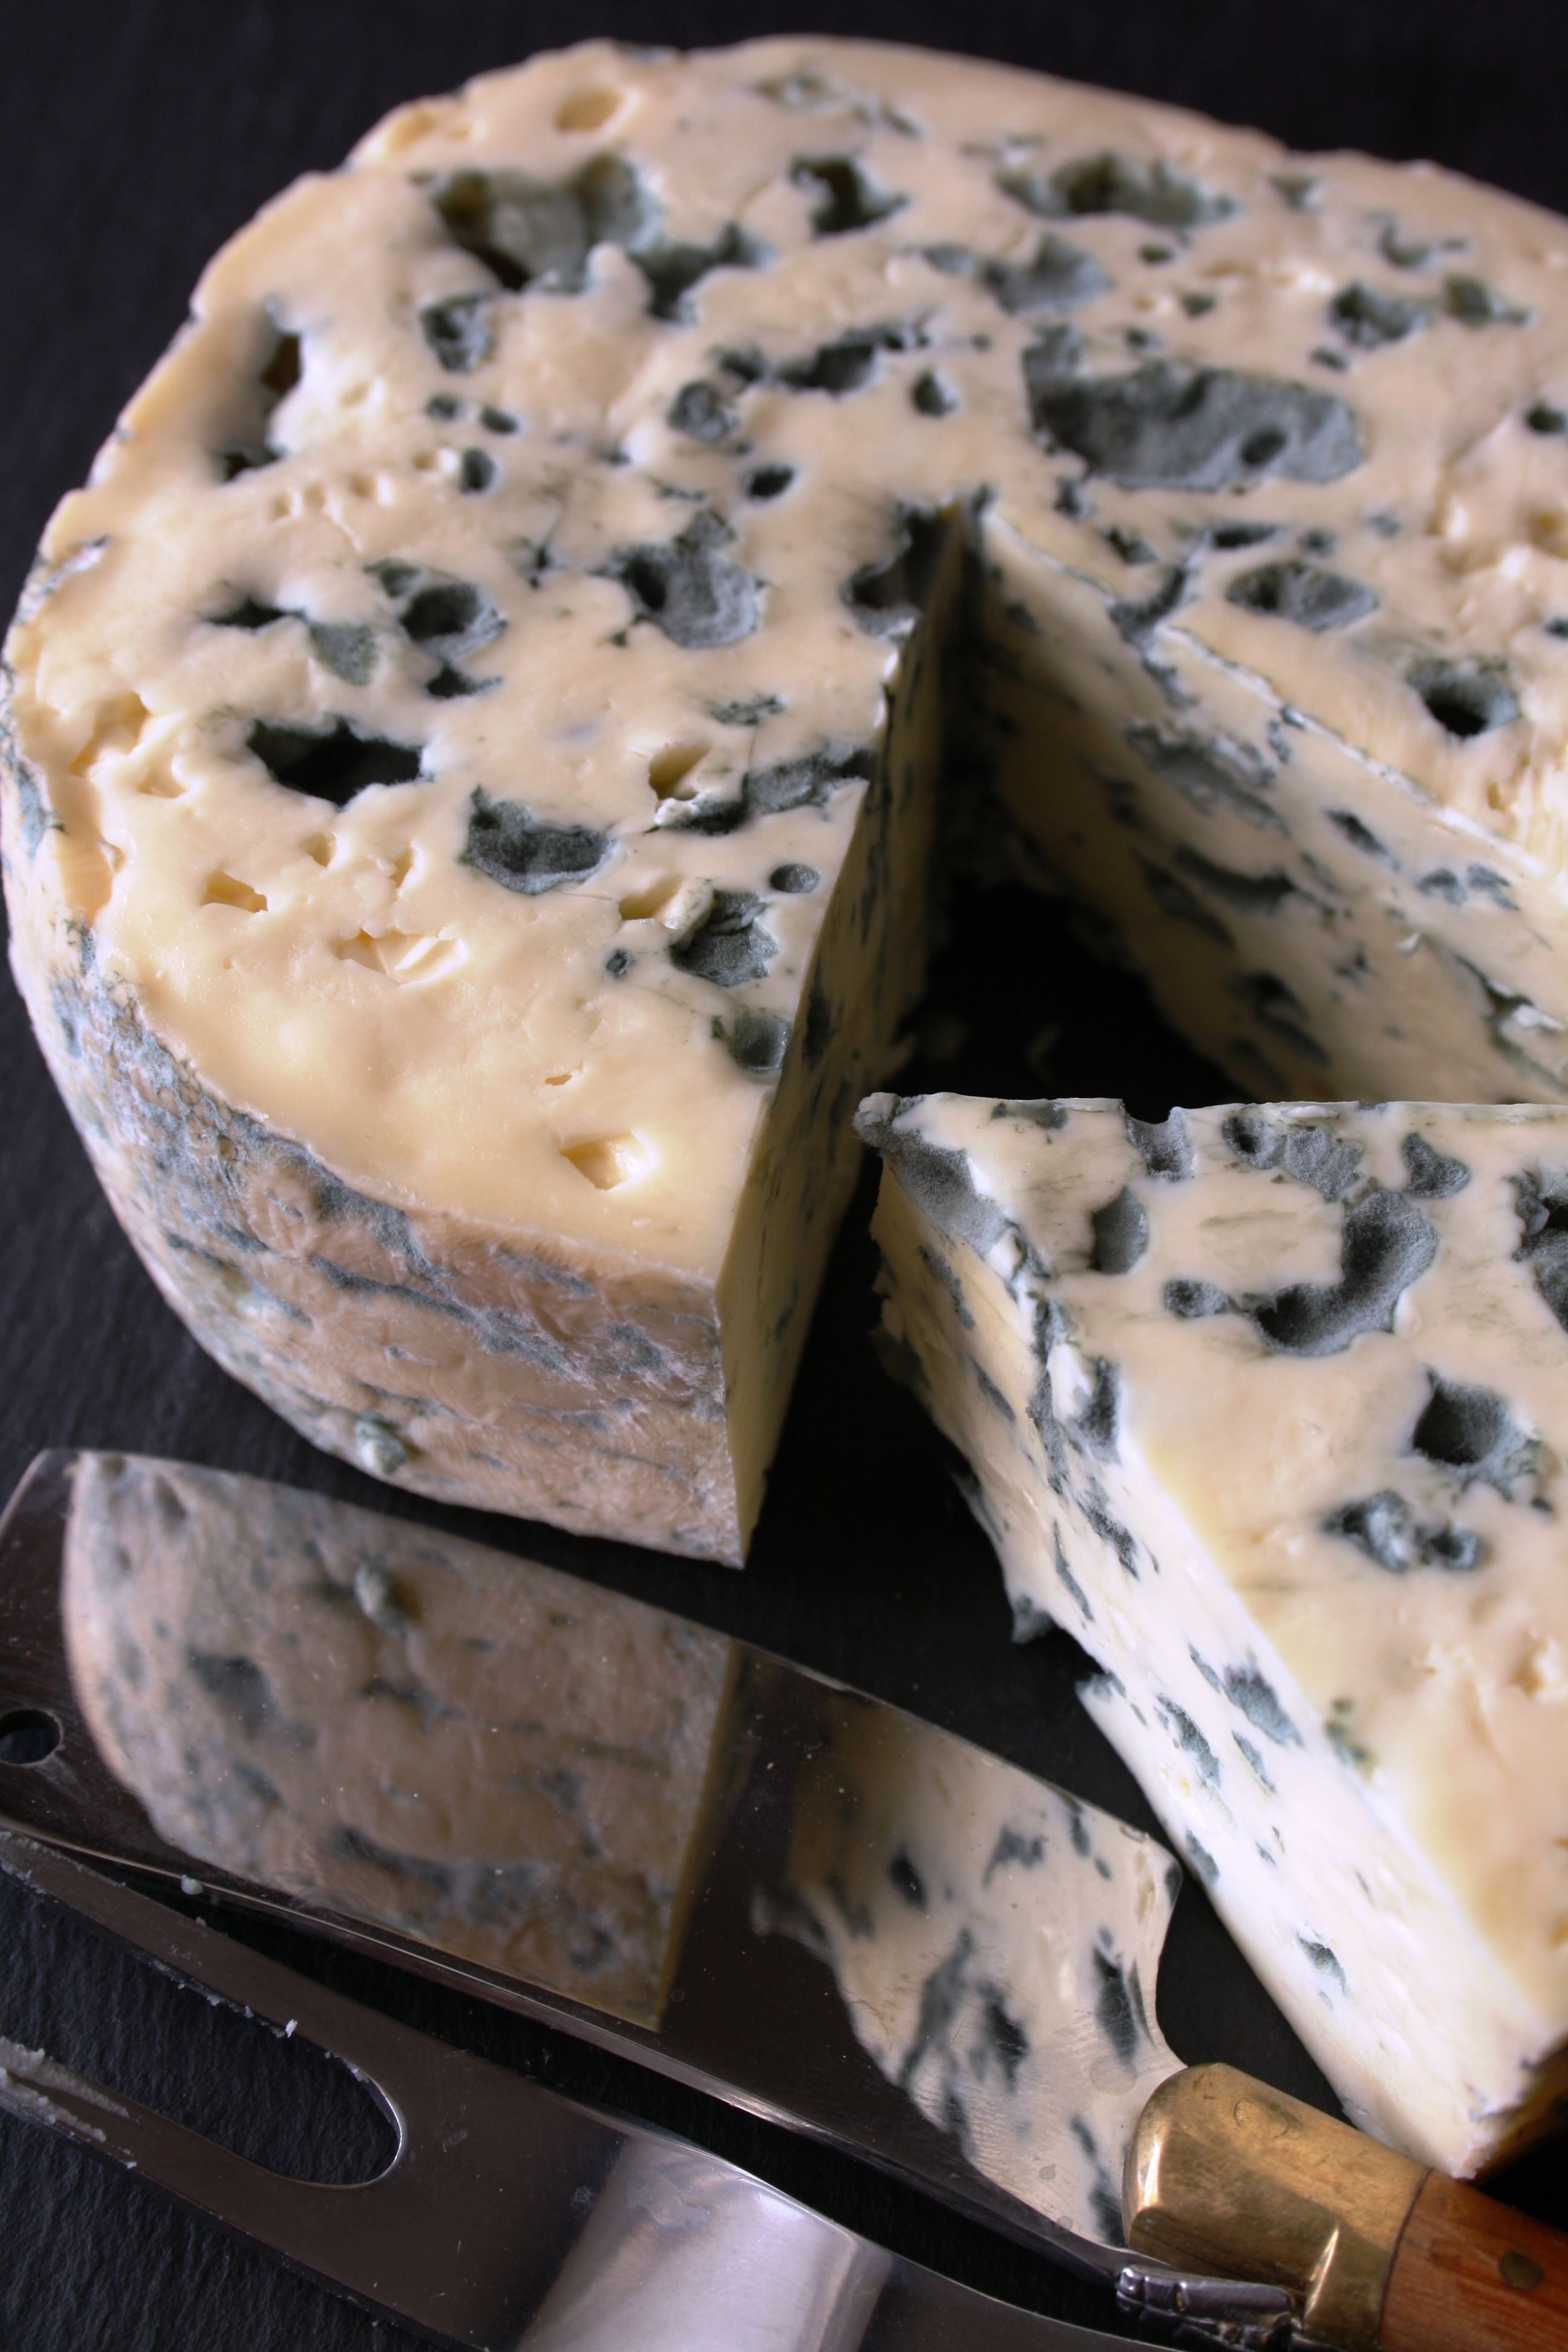 Blue cheese    More foodie lusciousness here: http://mylusciouslife.com/photo-galleries/wining-dining-entertaining-and-celebrating/